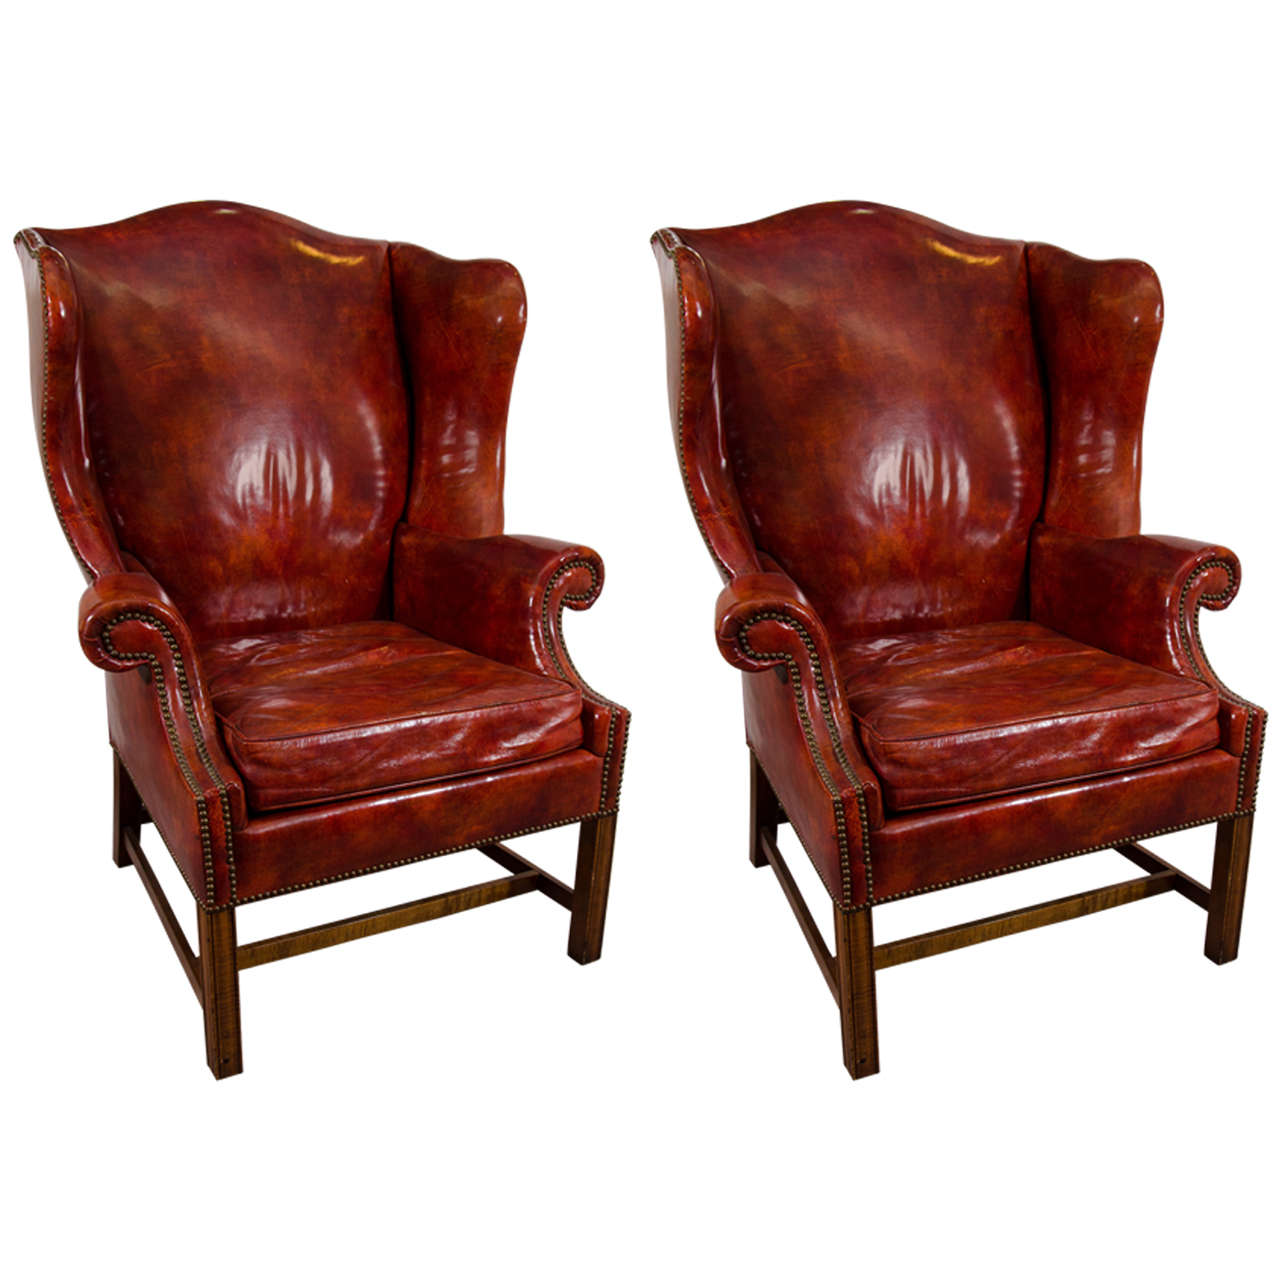 Midcentury Pair of Burgundy Leather Wing Chairs by Baker